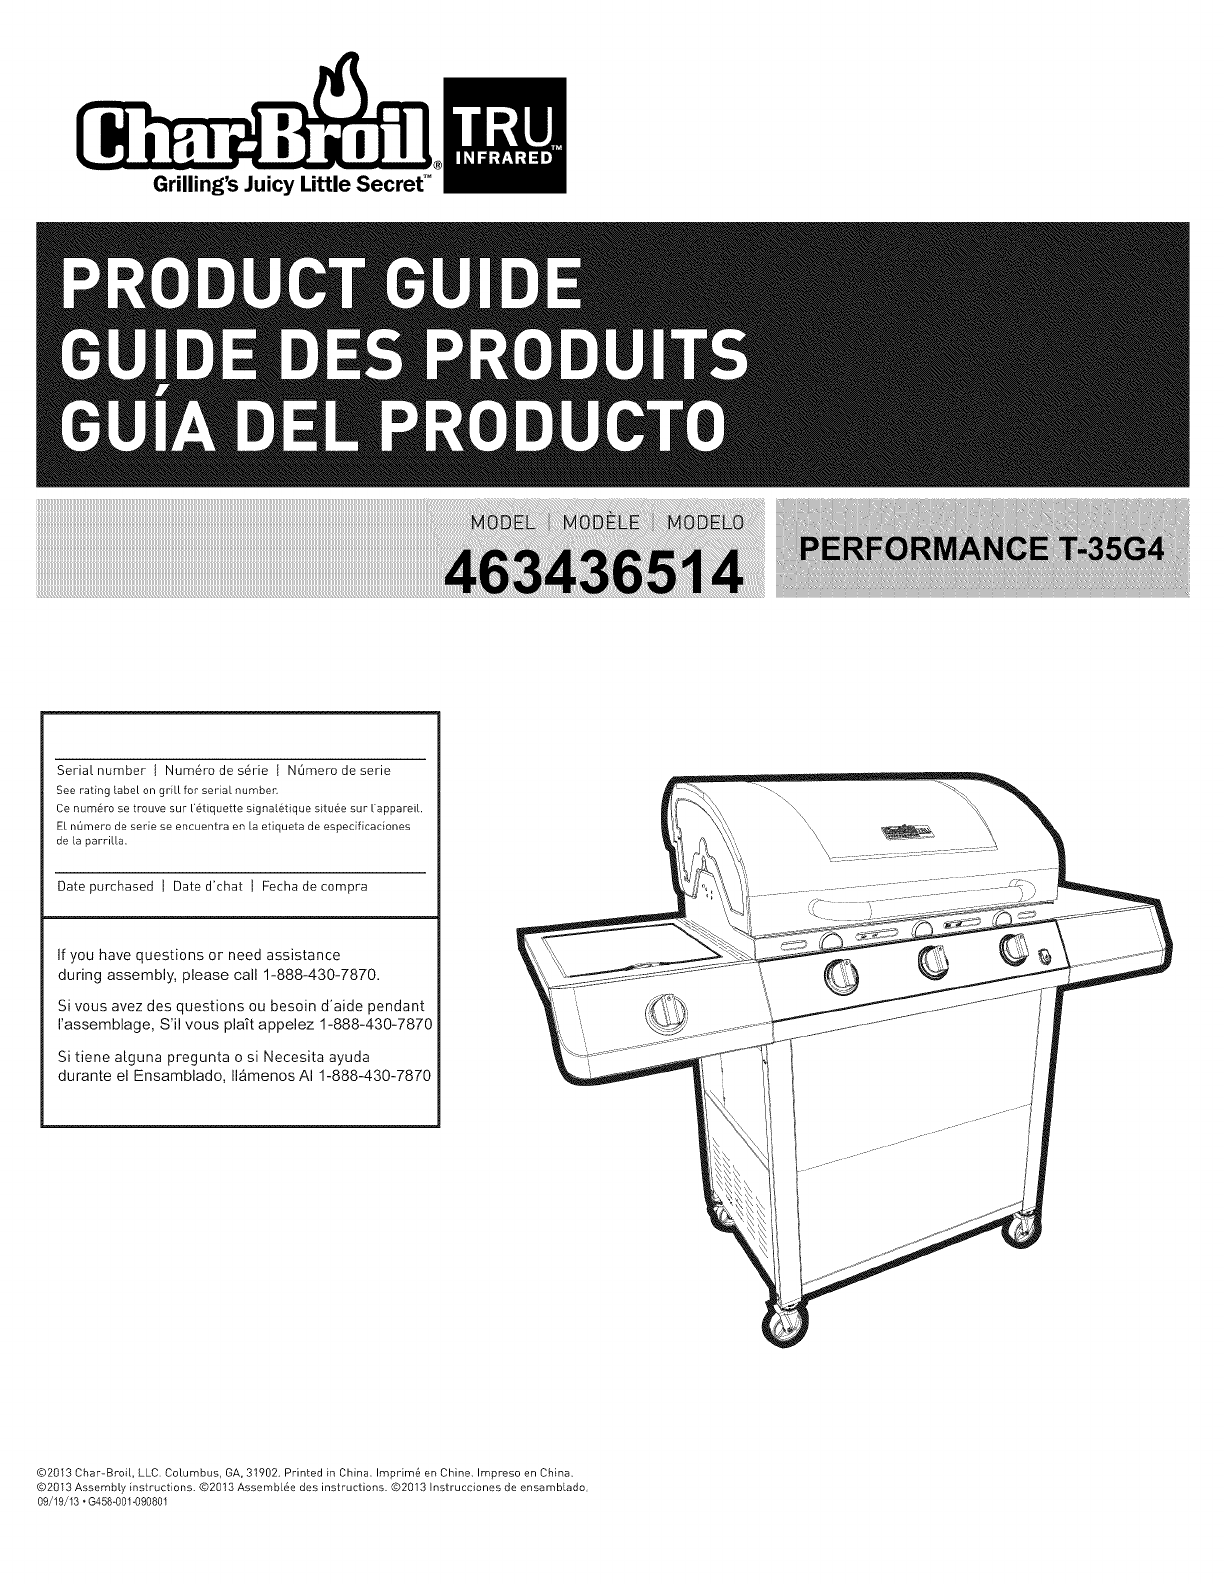 Char Broil 463436514 User Manual Gas Grill Manuals And Guides 1403302l